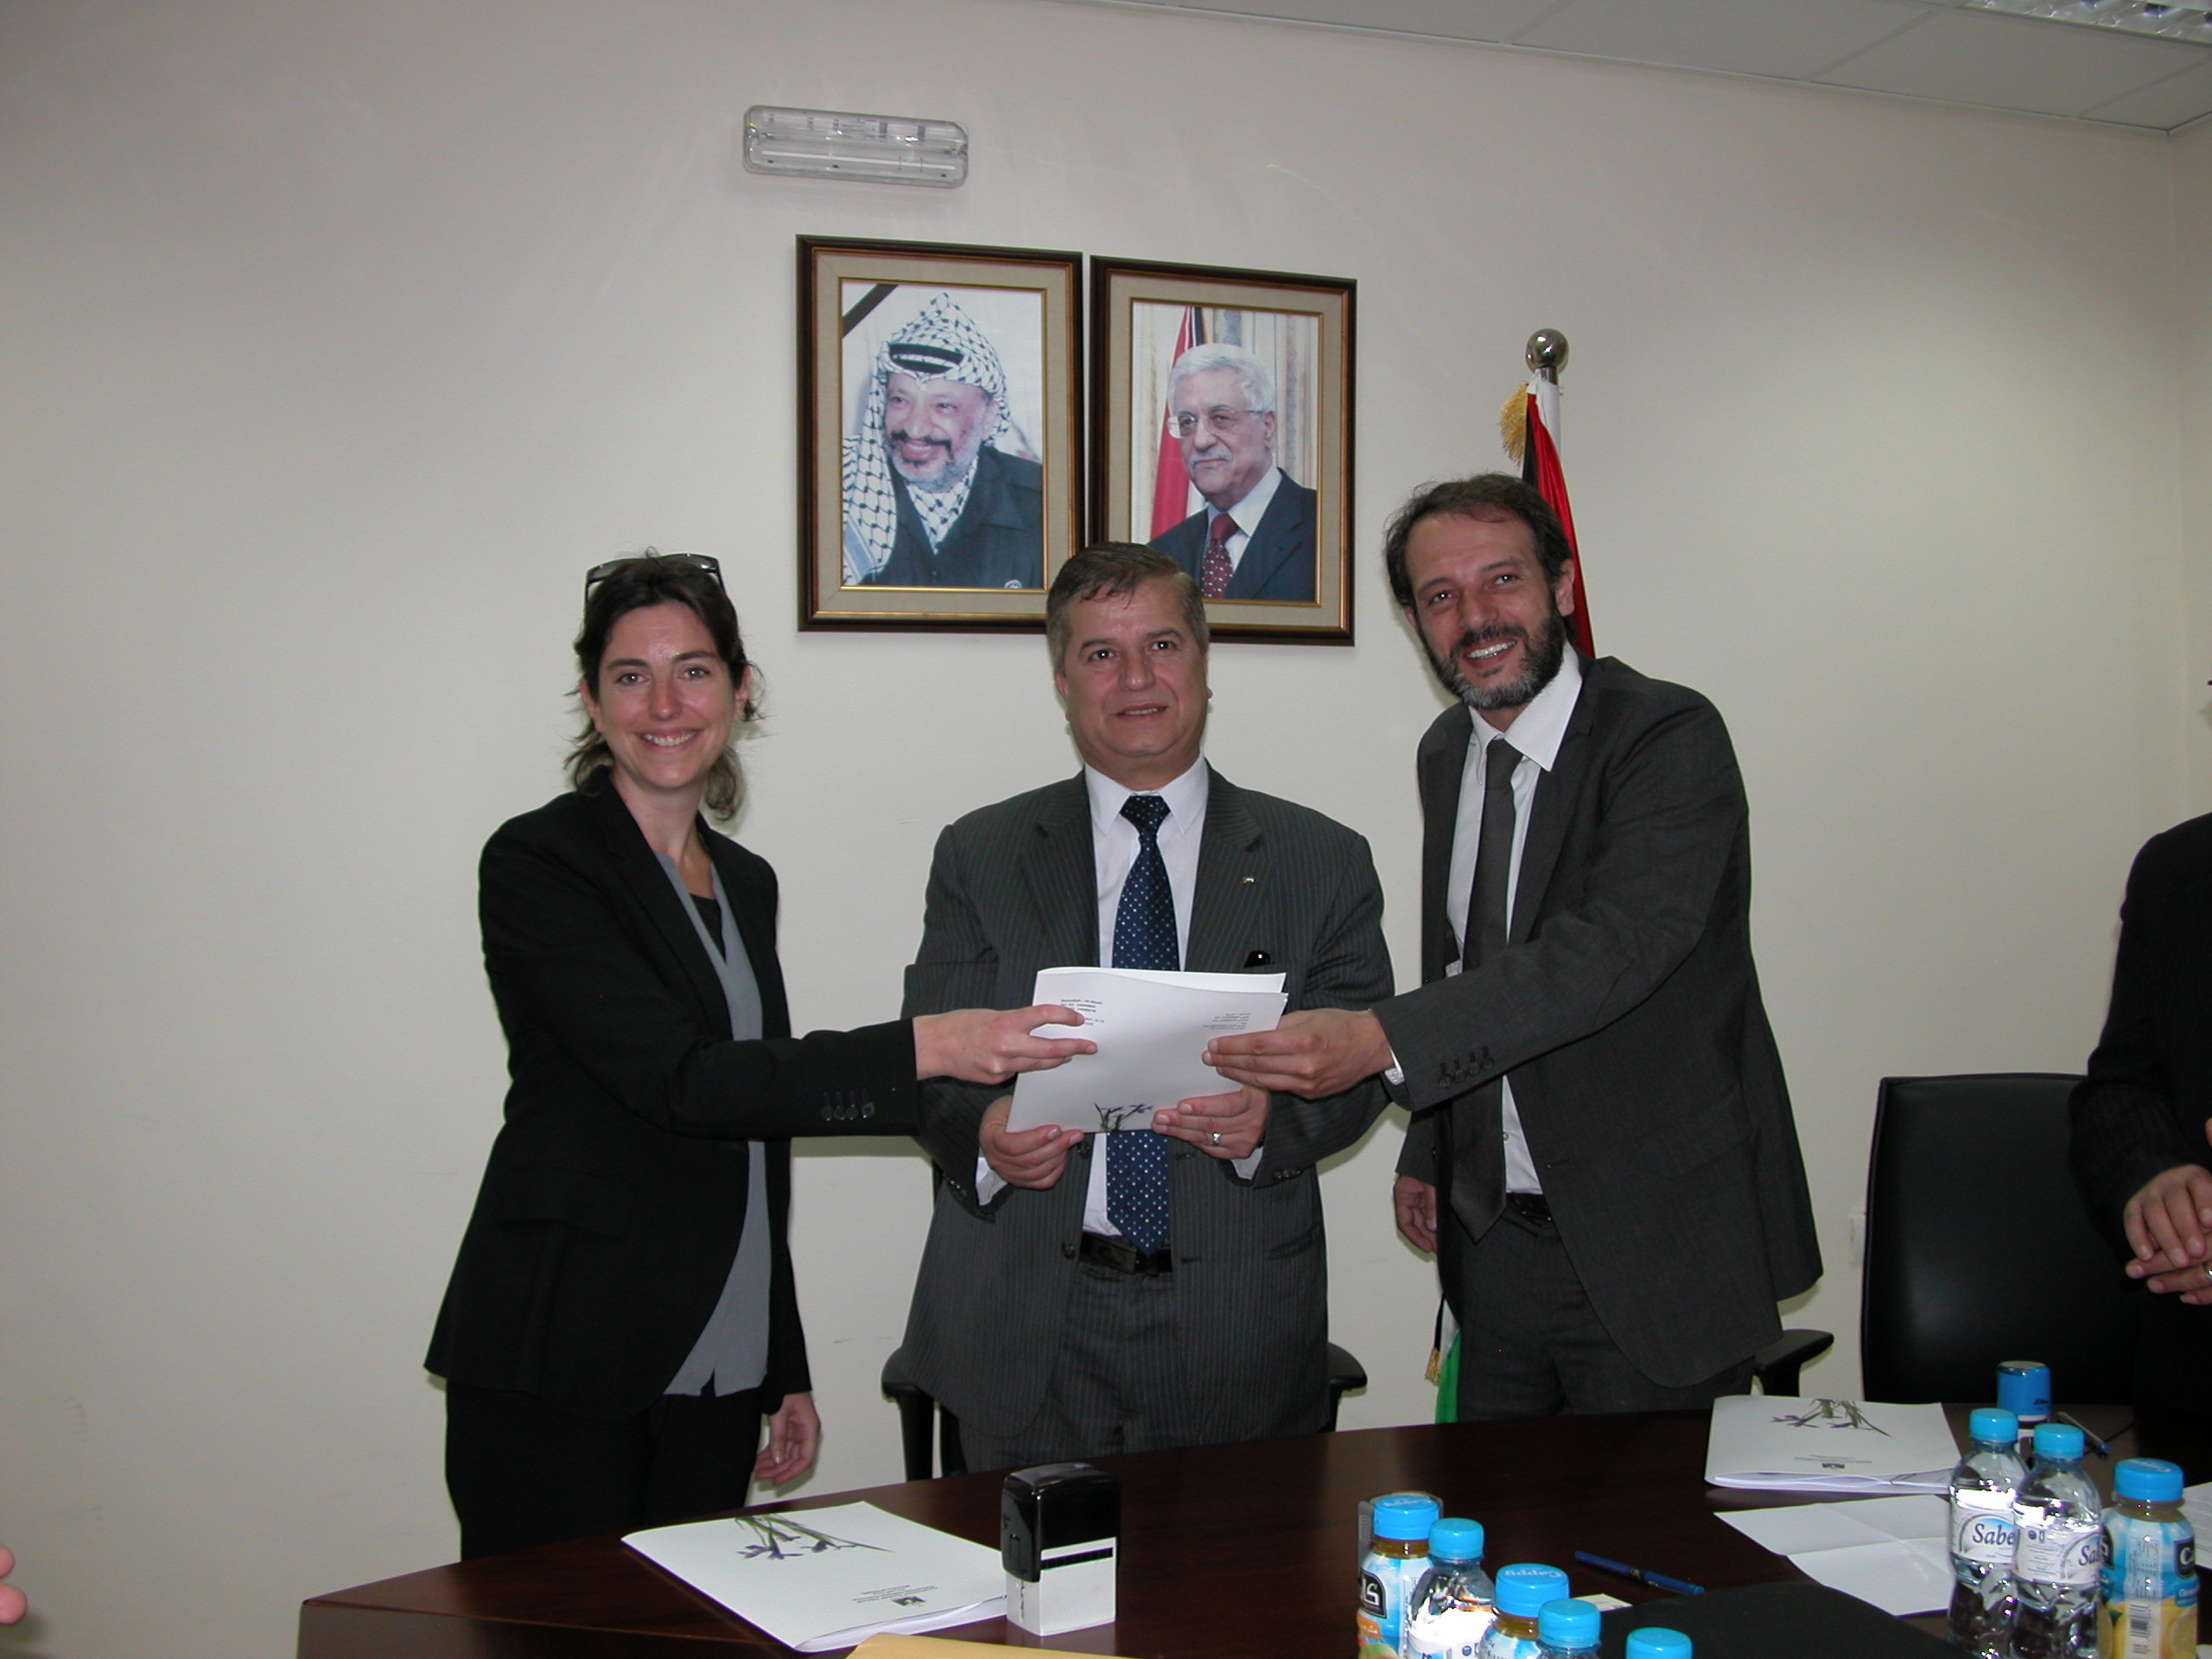 Representatives of MdM-France and MdM-Swiss with the Minister of Health of Palestine during the signature on to a project aimed at improving mental health care for children and adolescents in Nablus governorate - April 2014 ©MdM